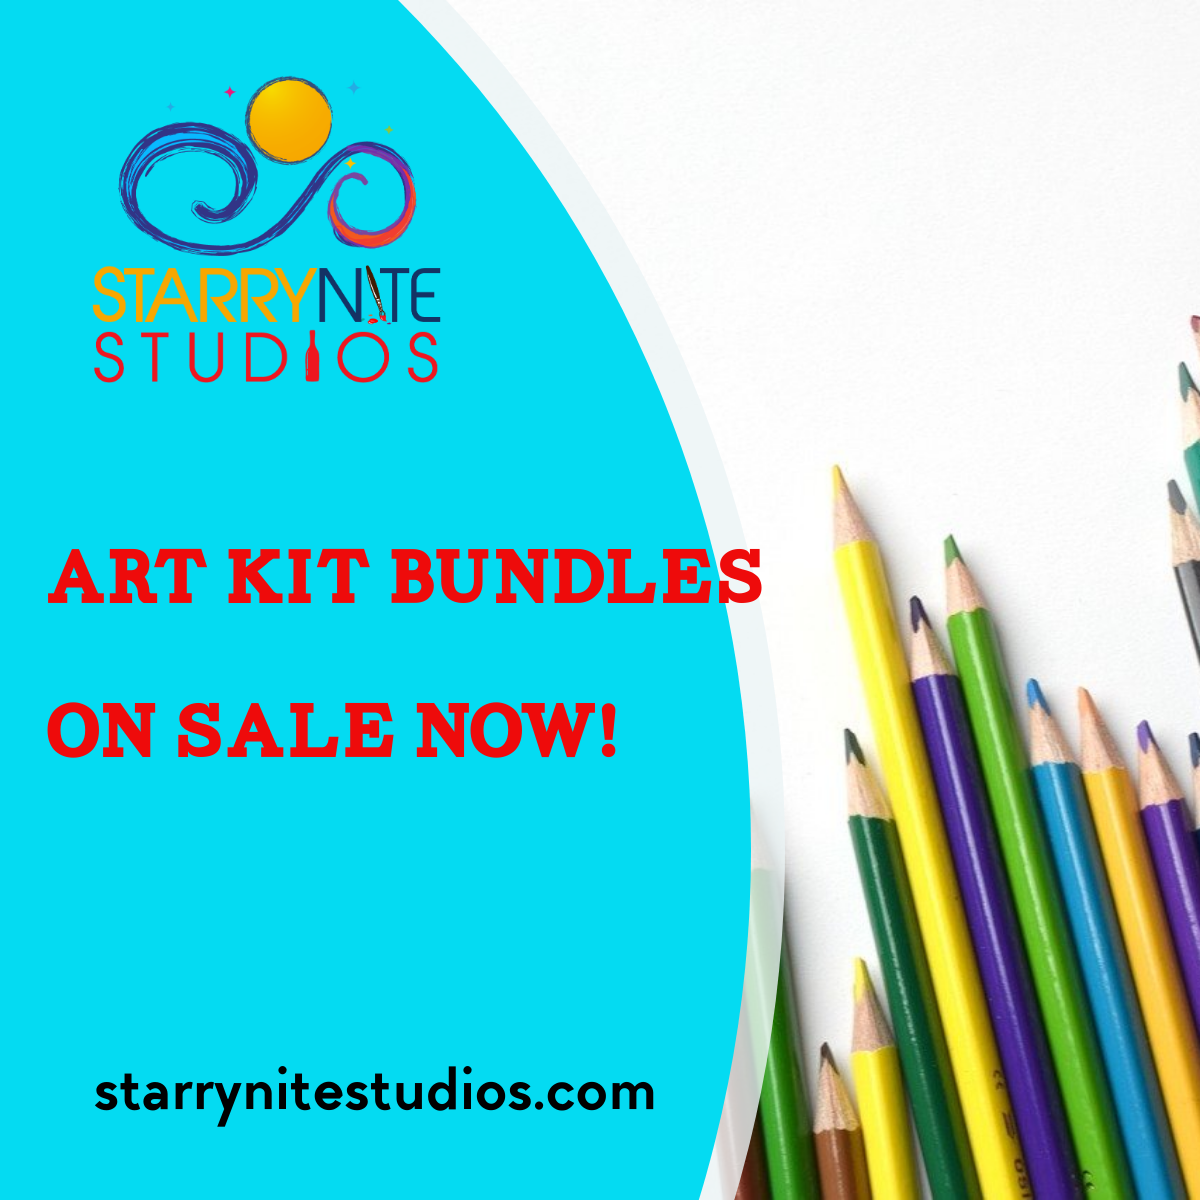 ART KIT BUNDLE